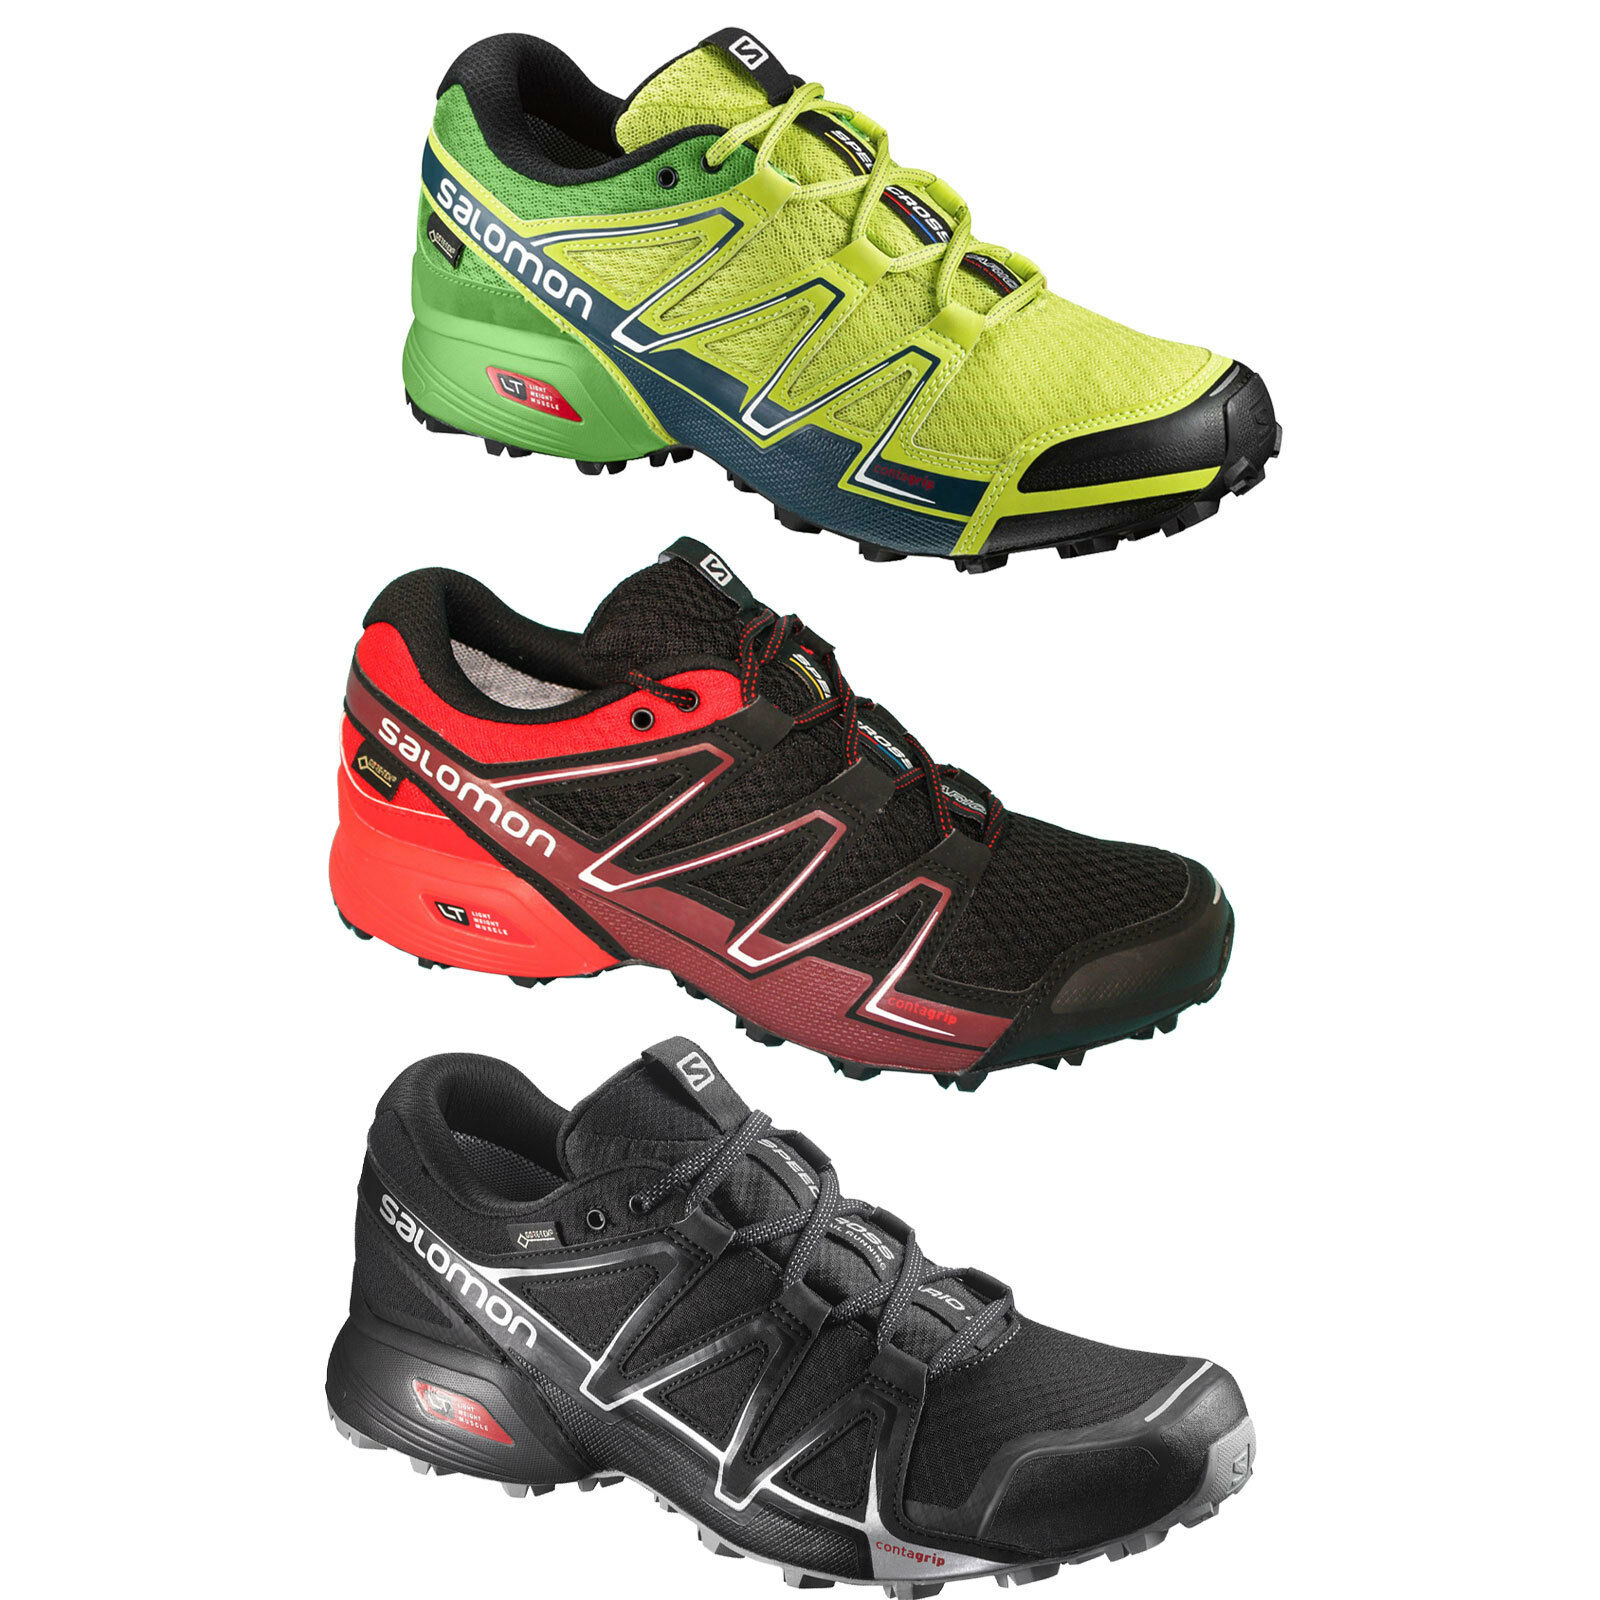 Salomon  Speedcross Vario 2 GTX Gore-Tex Men's Running shoes Crossschuhe shoes  the best selection of